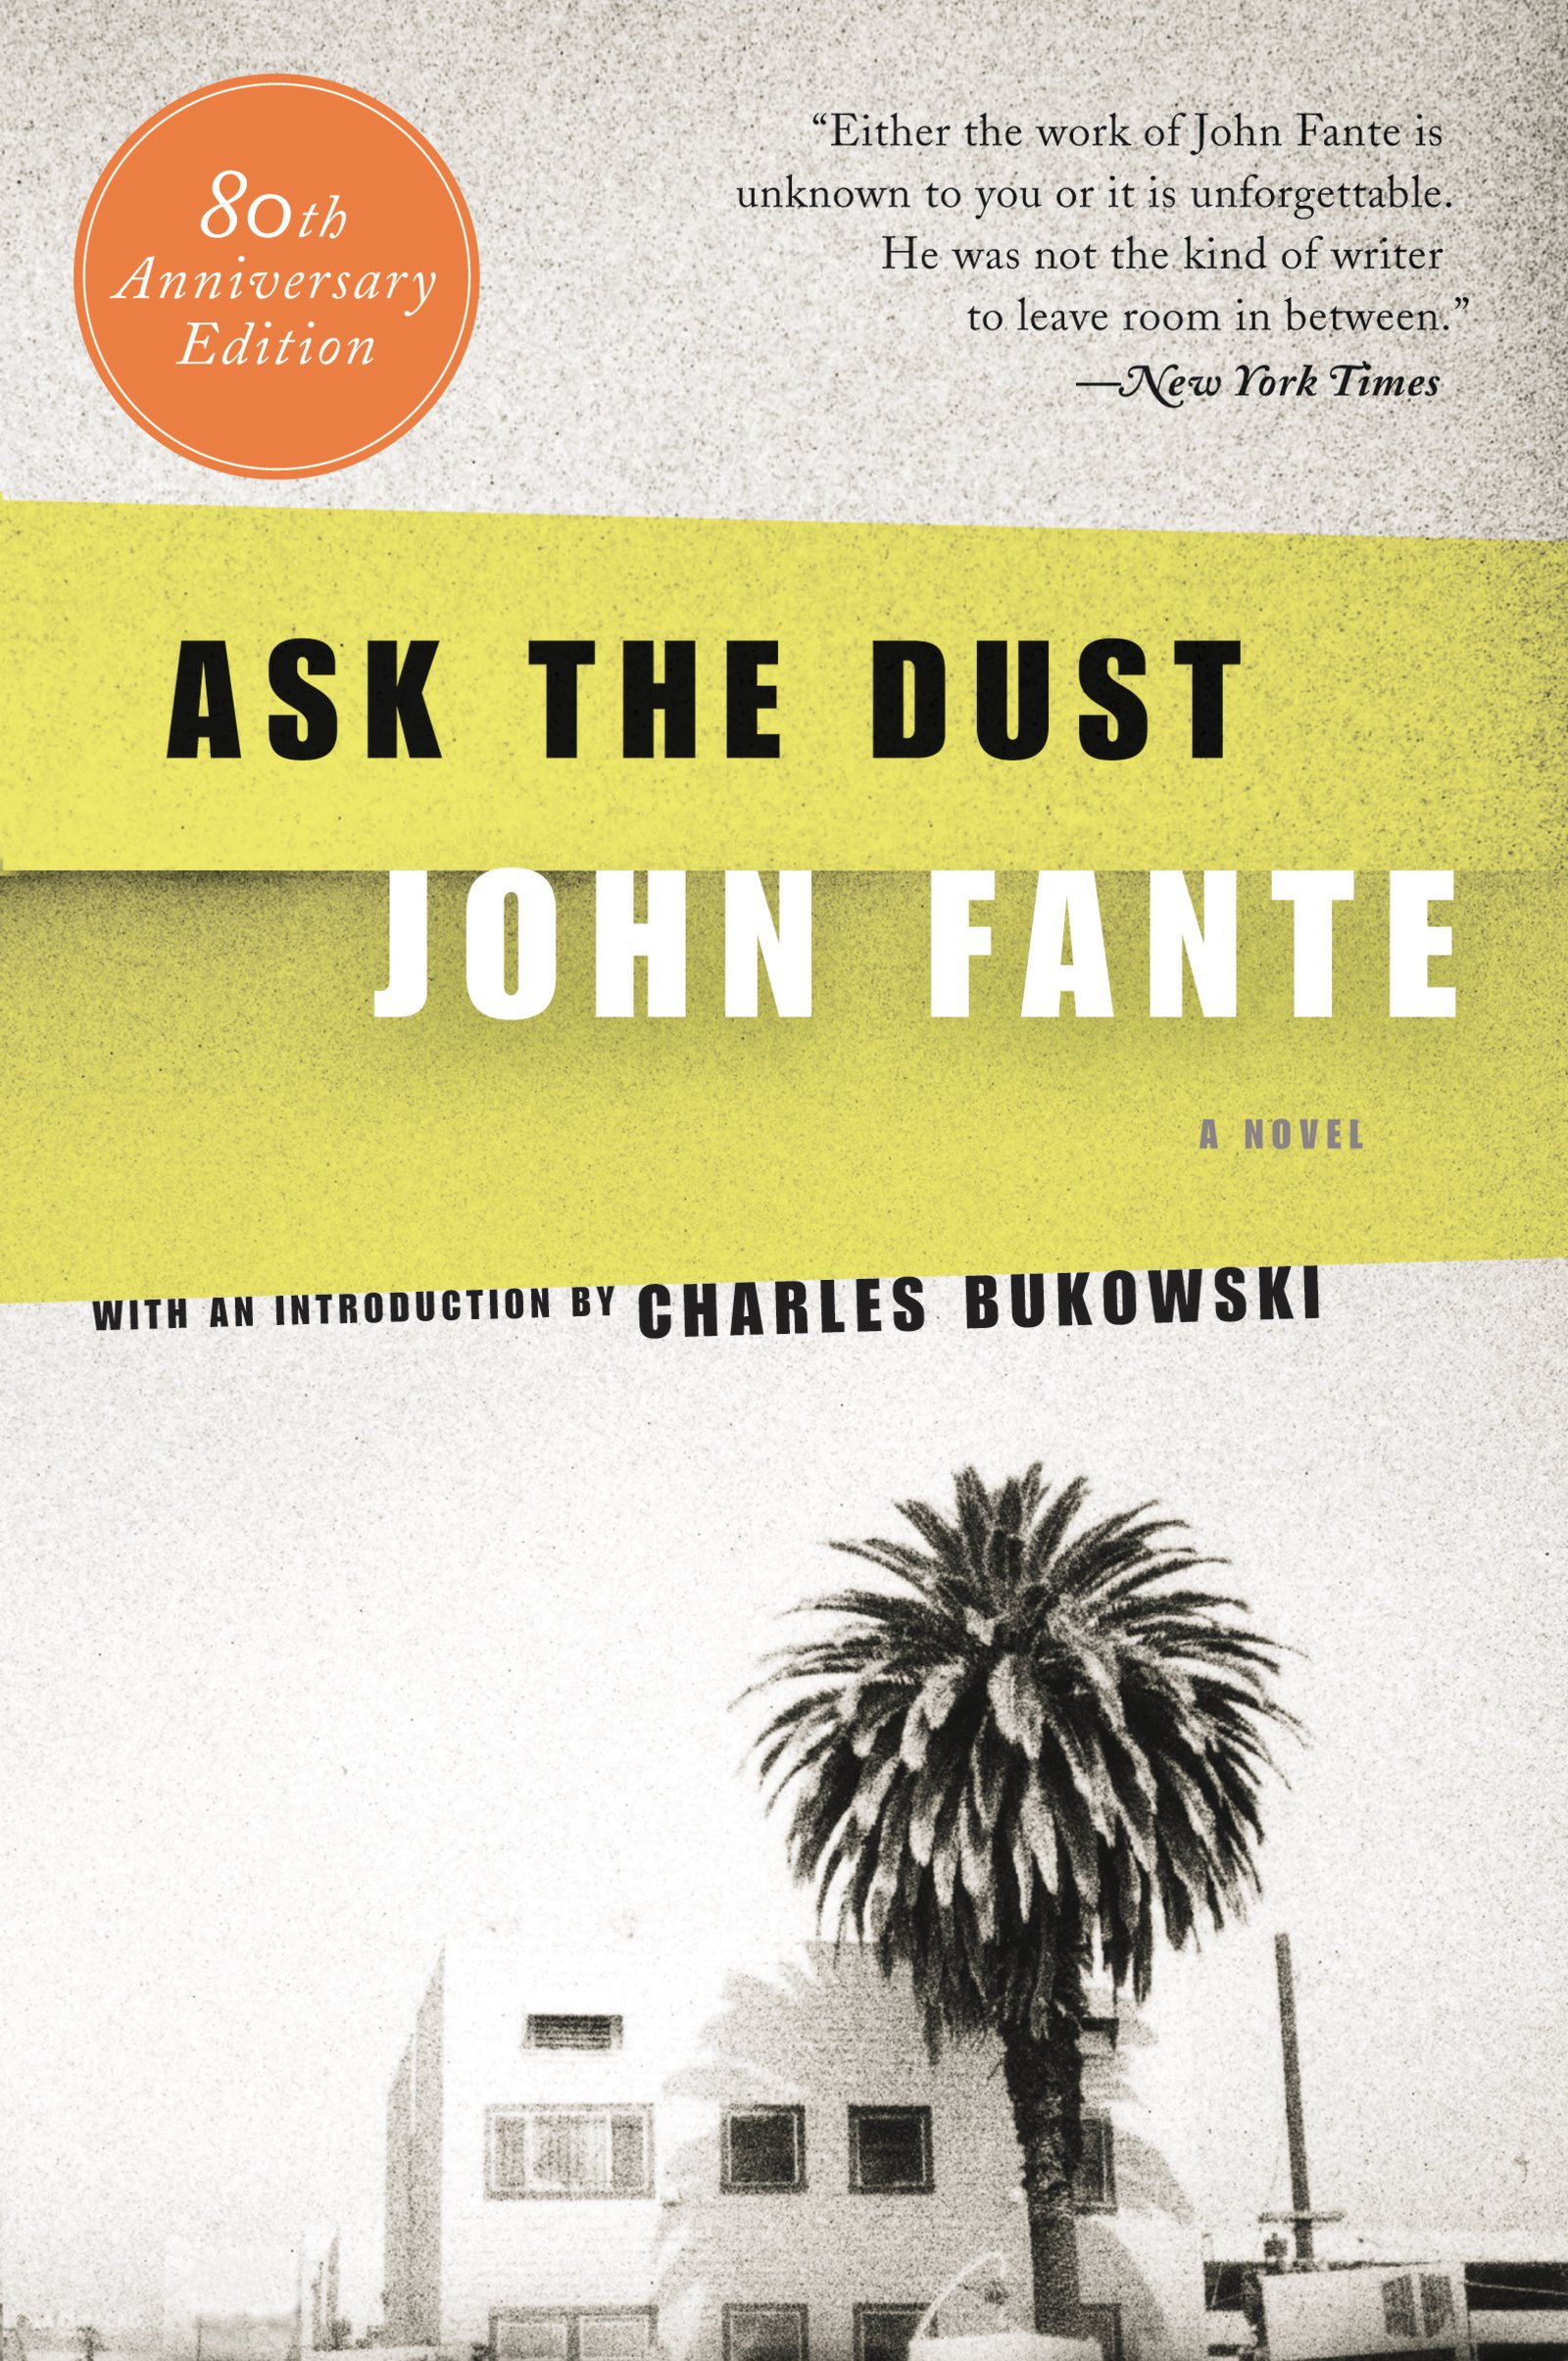 Ask the dust goodreads giveaways